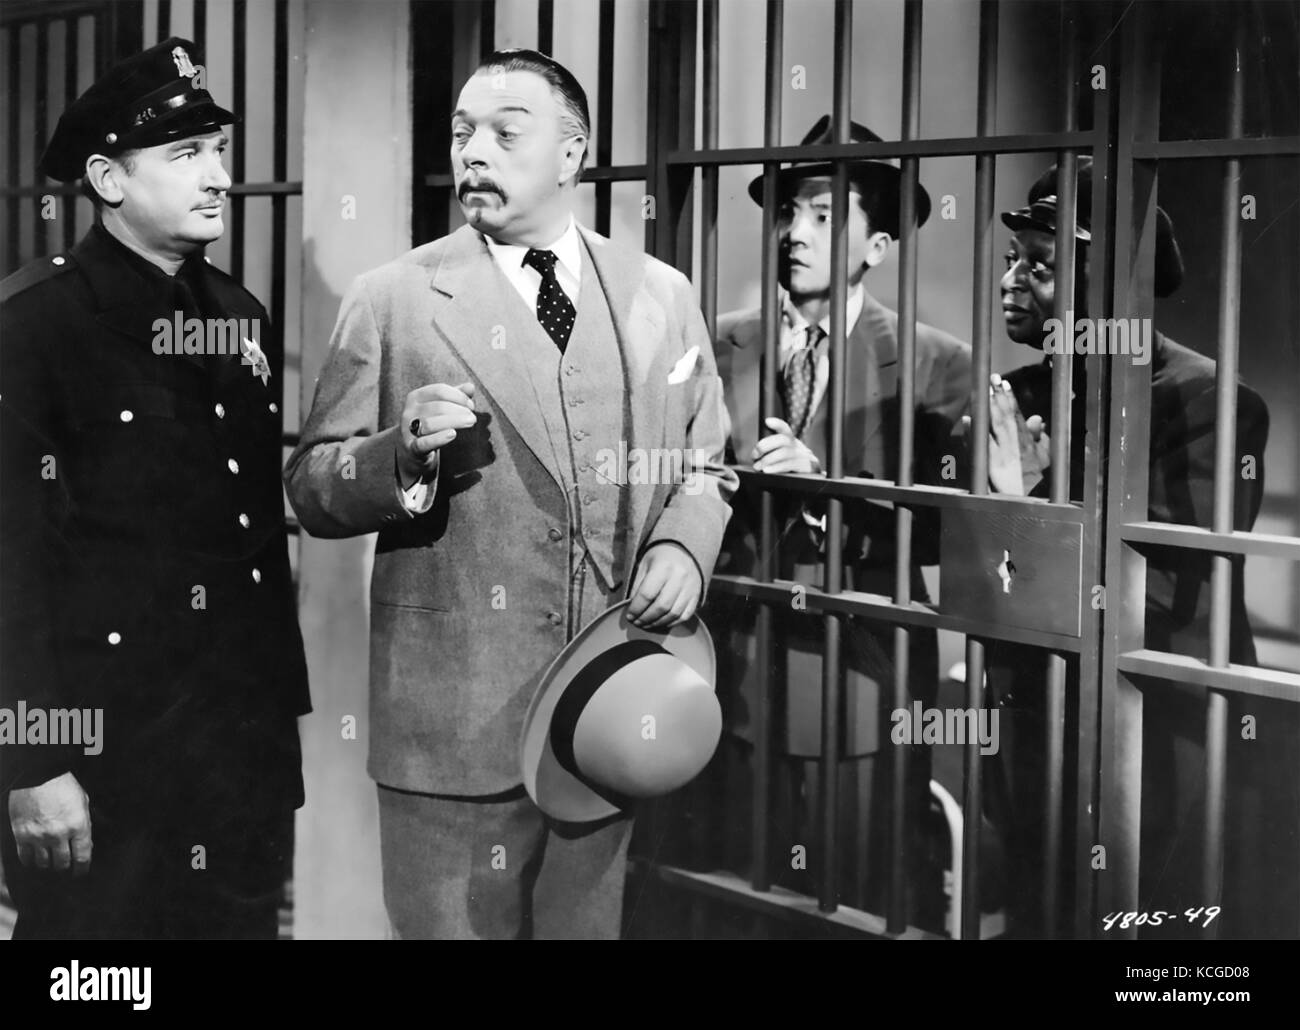 THE SHANGHAI CHEST 1948 Monogram Pictures film with Roland Winters as Charlie Chan - Stock Image